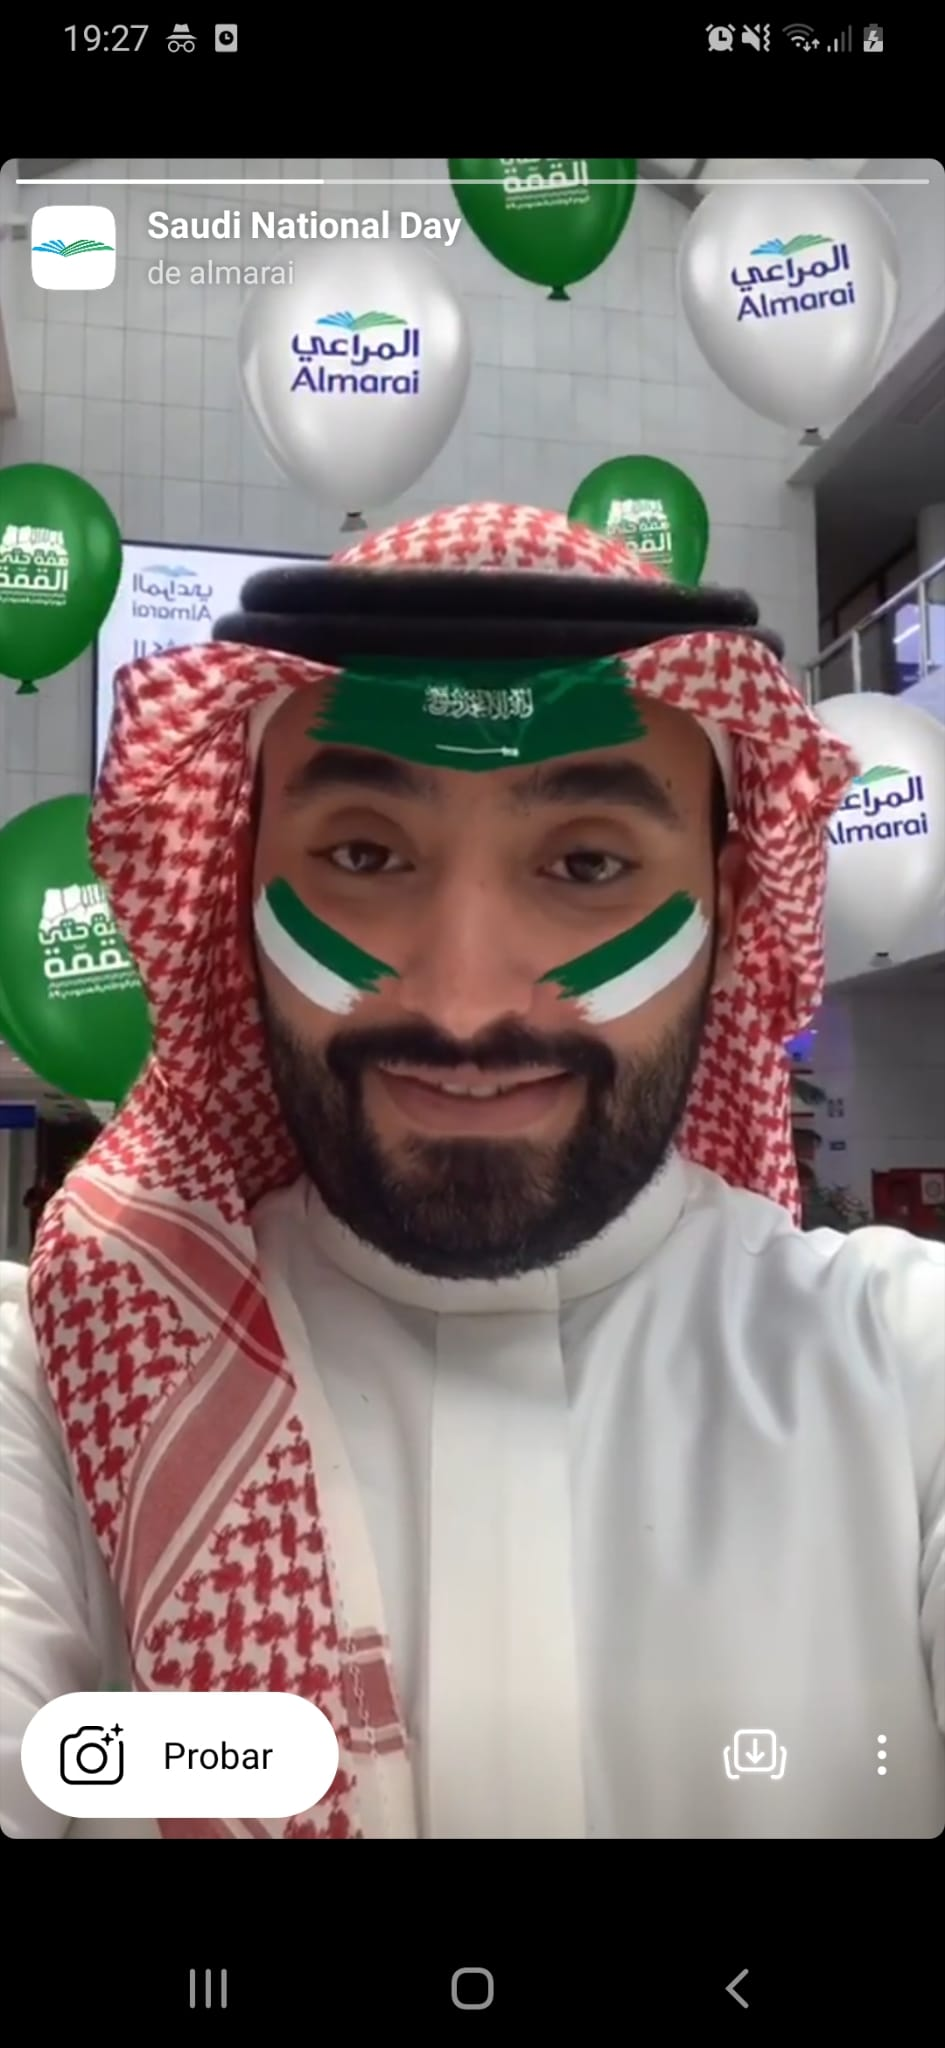 Saudí National Day